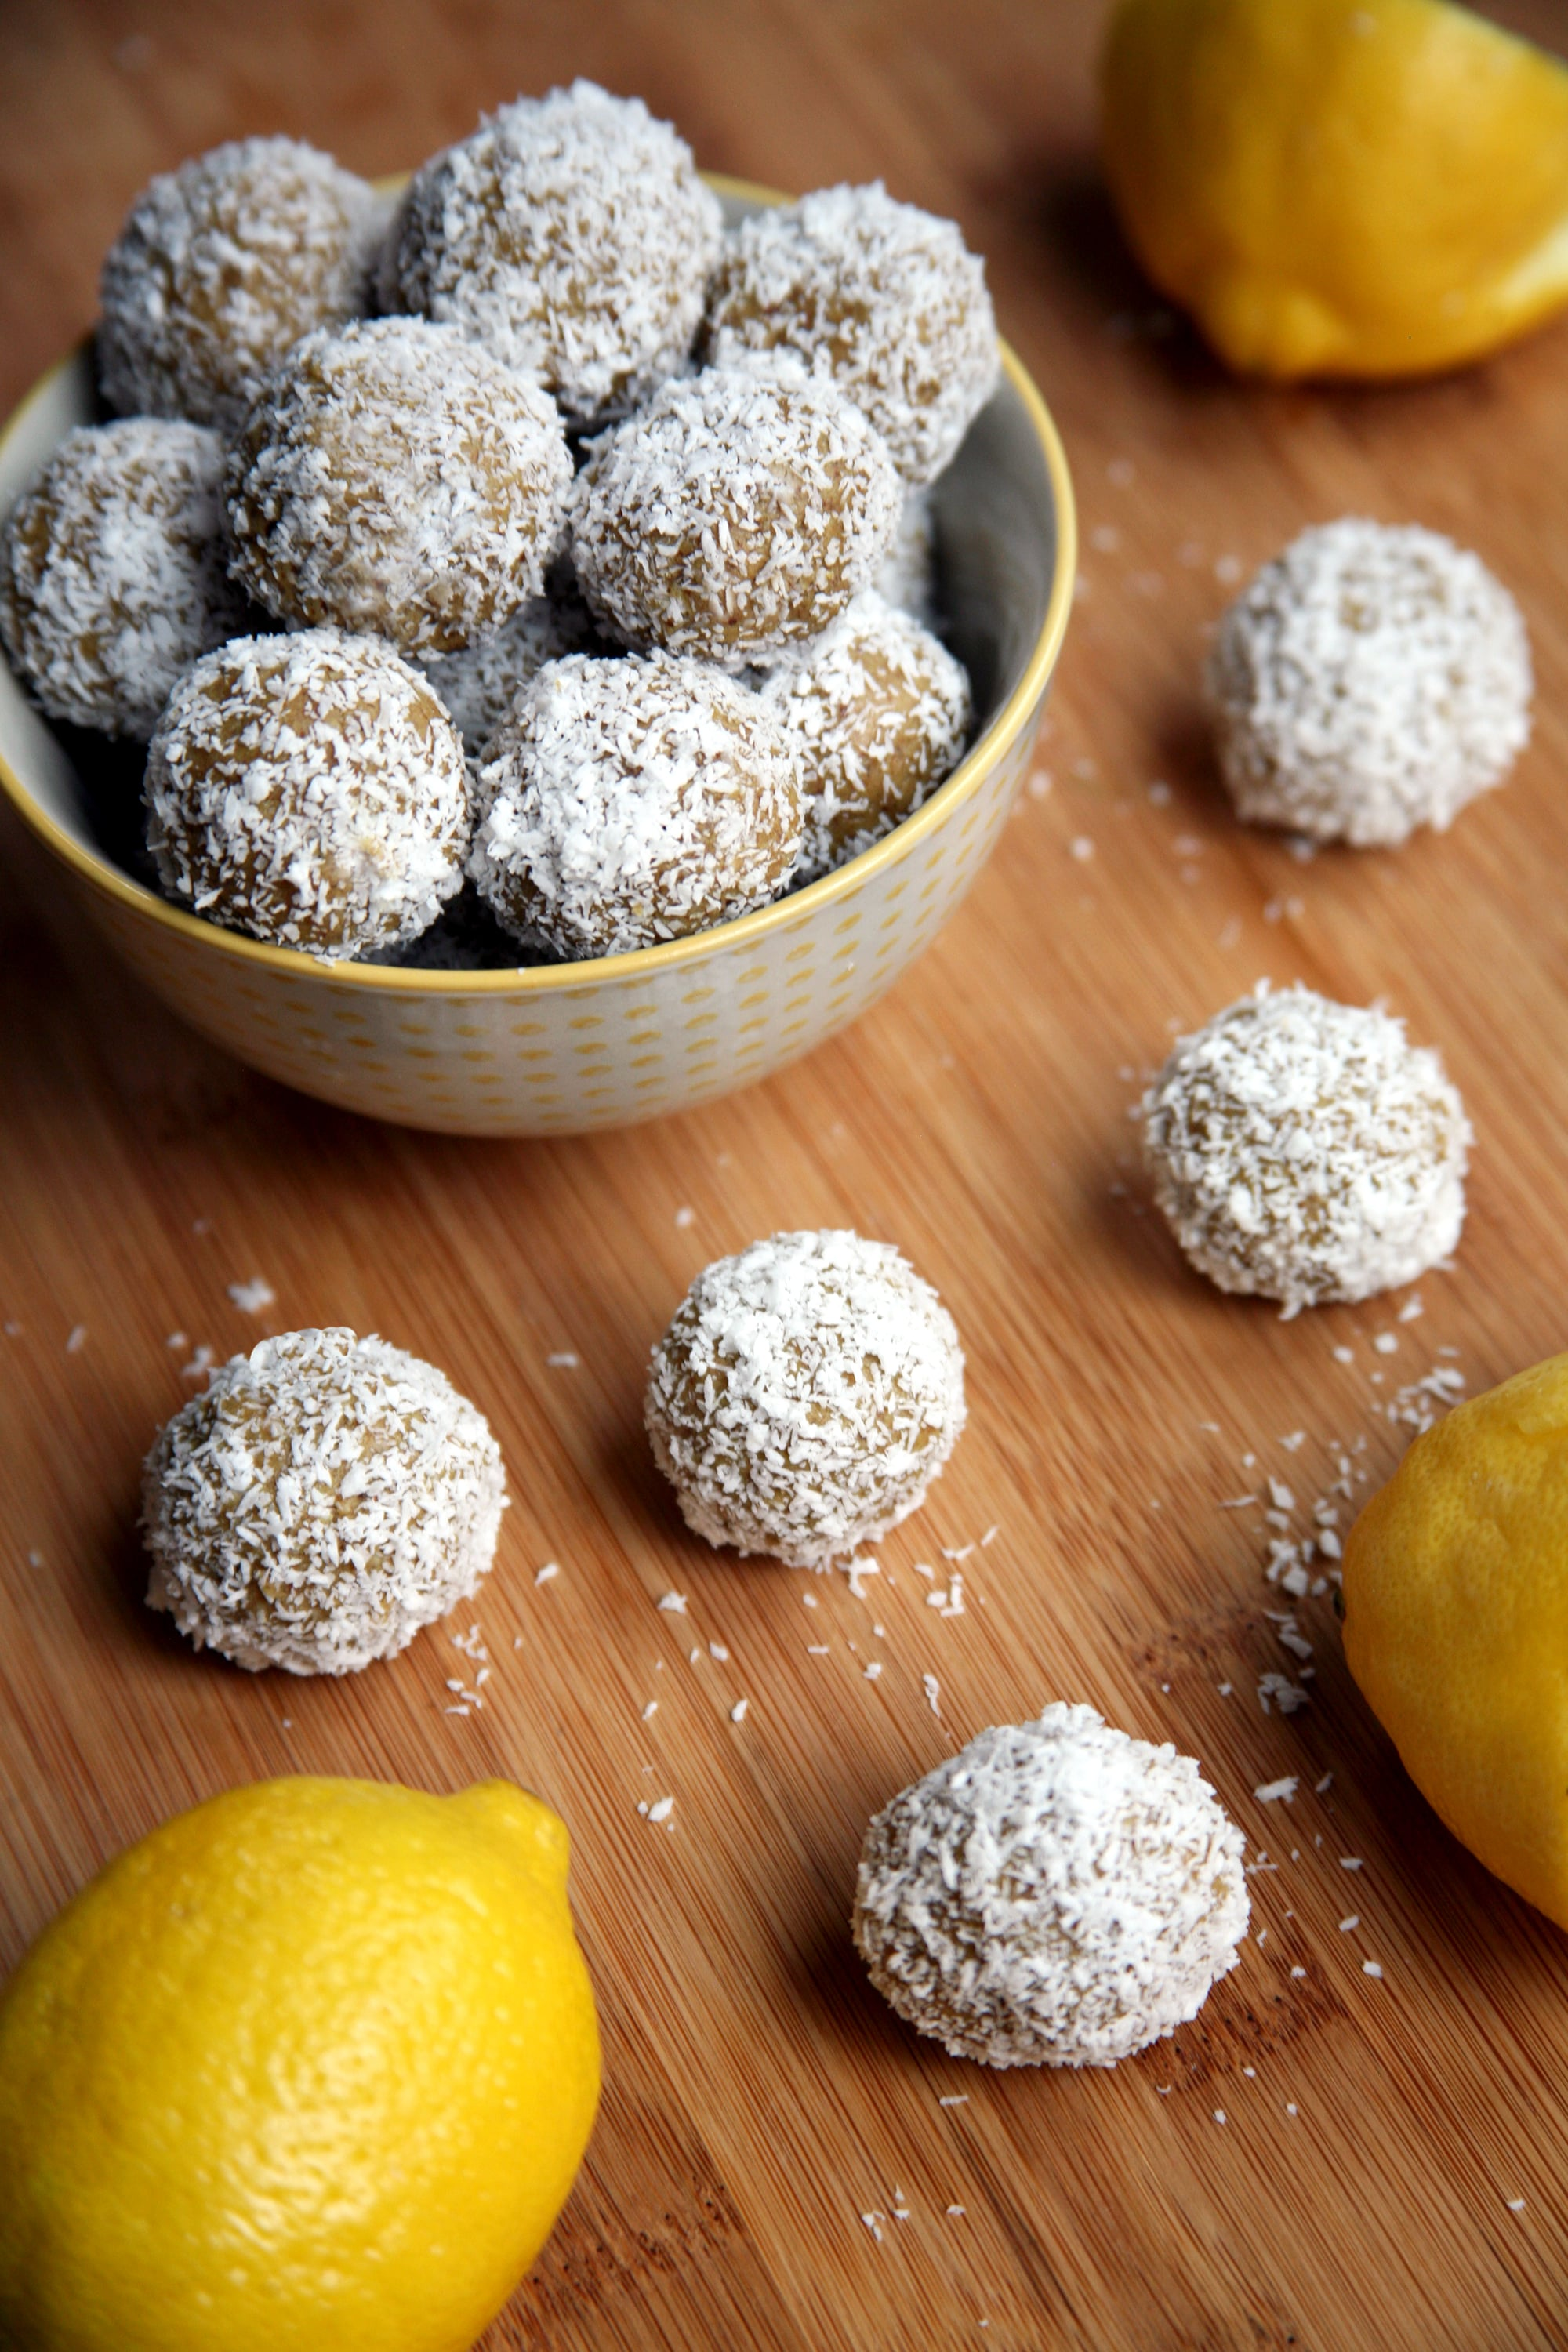 Satisfy Sweet Cravings With These 50-Calorie Lemon Coconut Balls